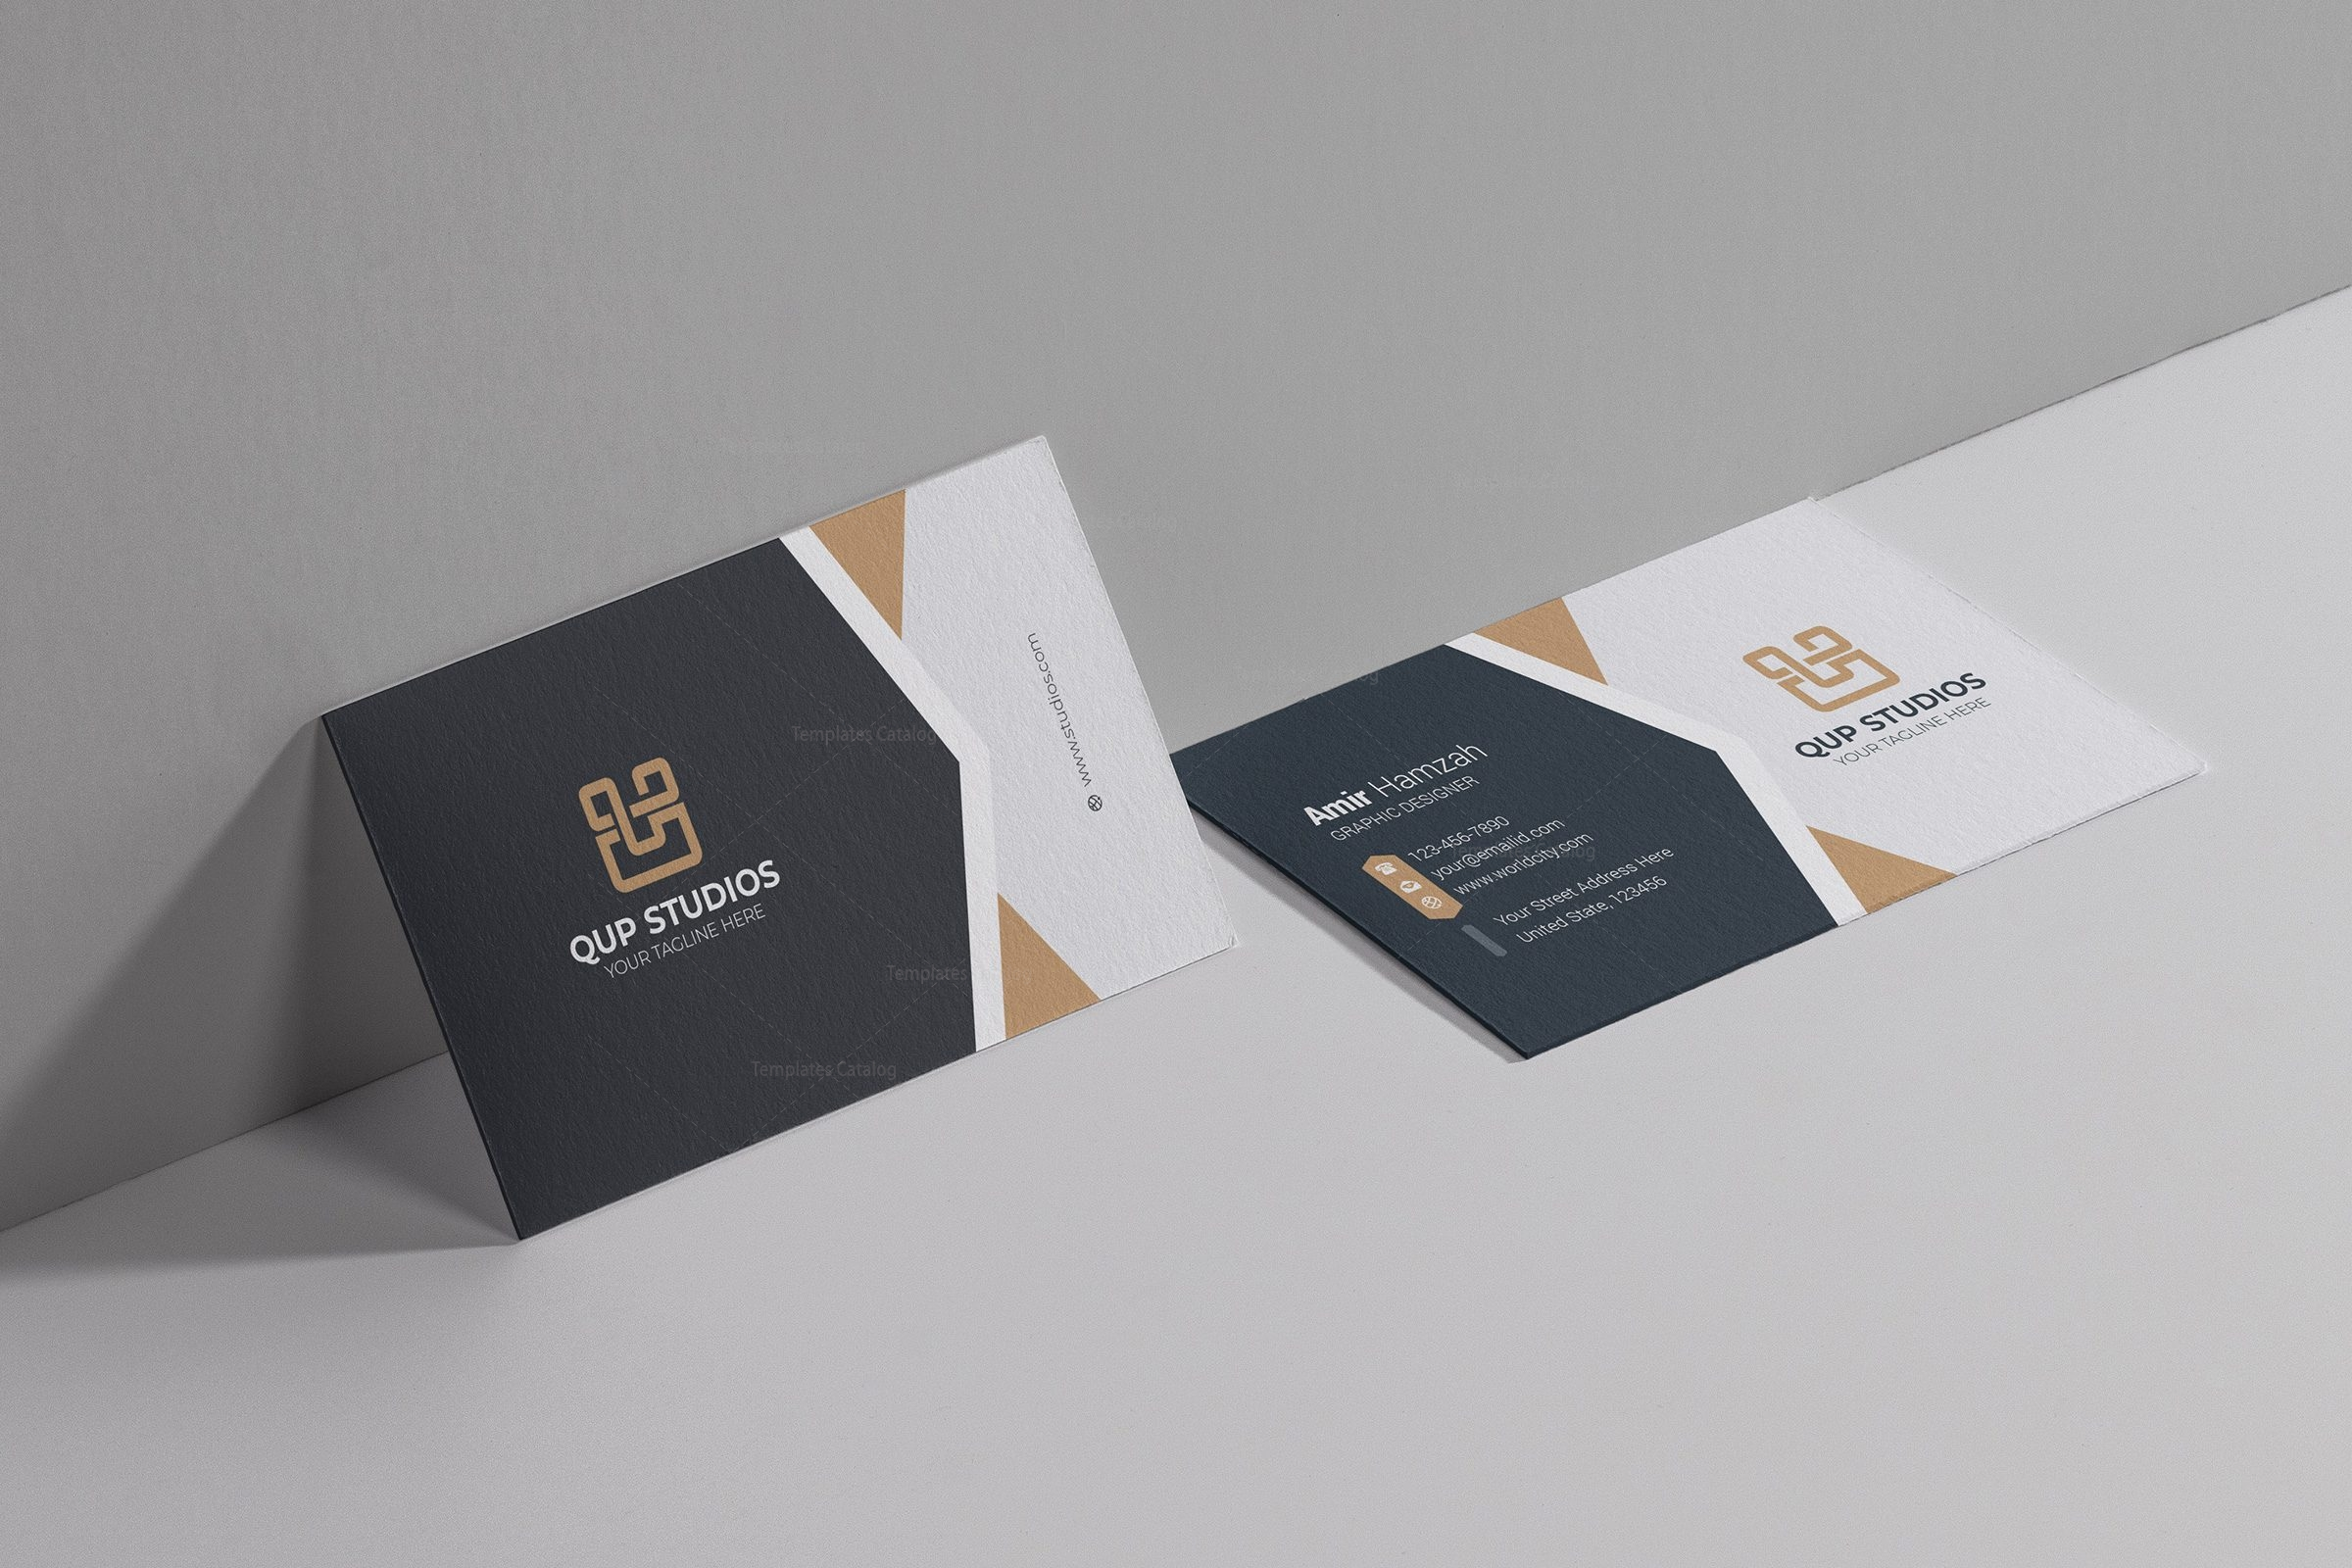 Studio Professional Business Card Design Template Template - Professional business card design templates